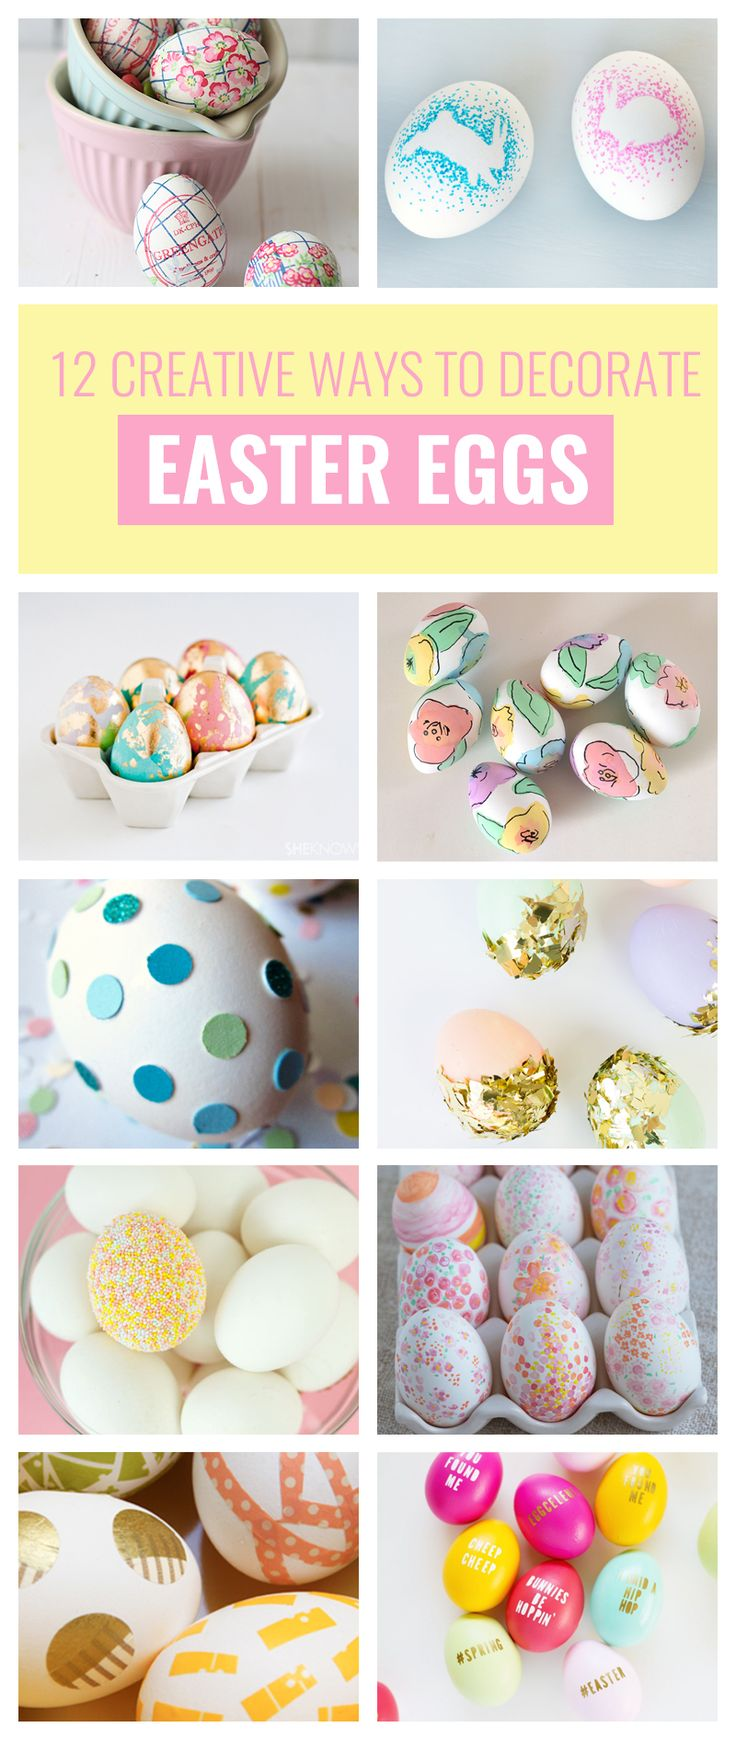 318 best easter spring ideas images on pinterest kitchens cupcake 12 creative ways to decorate easter eggs negle Choice Image